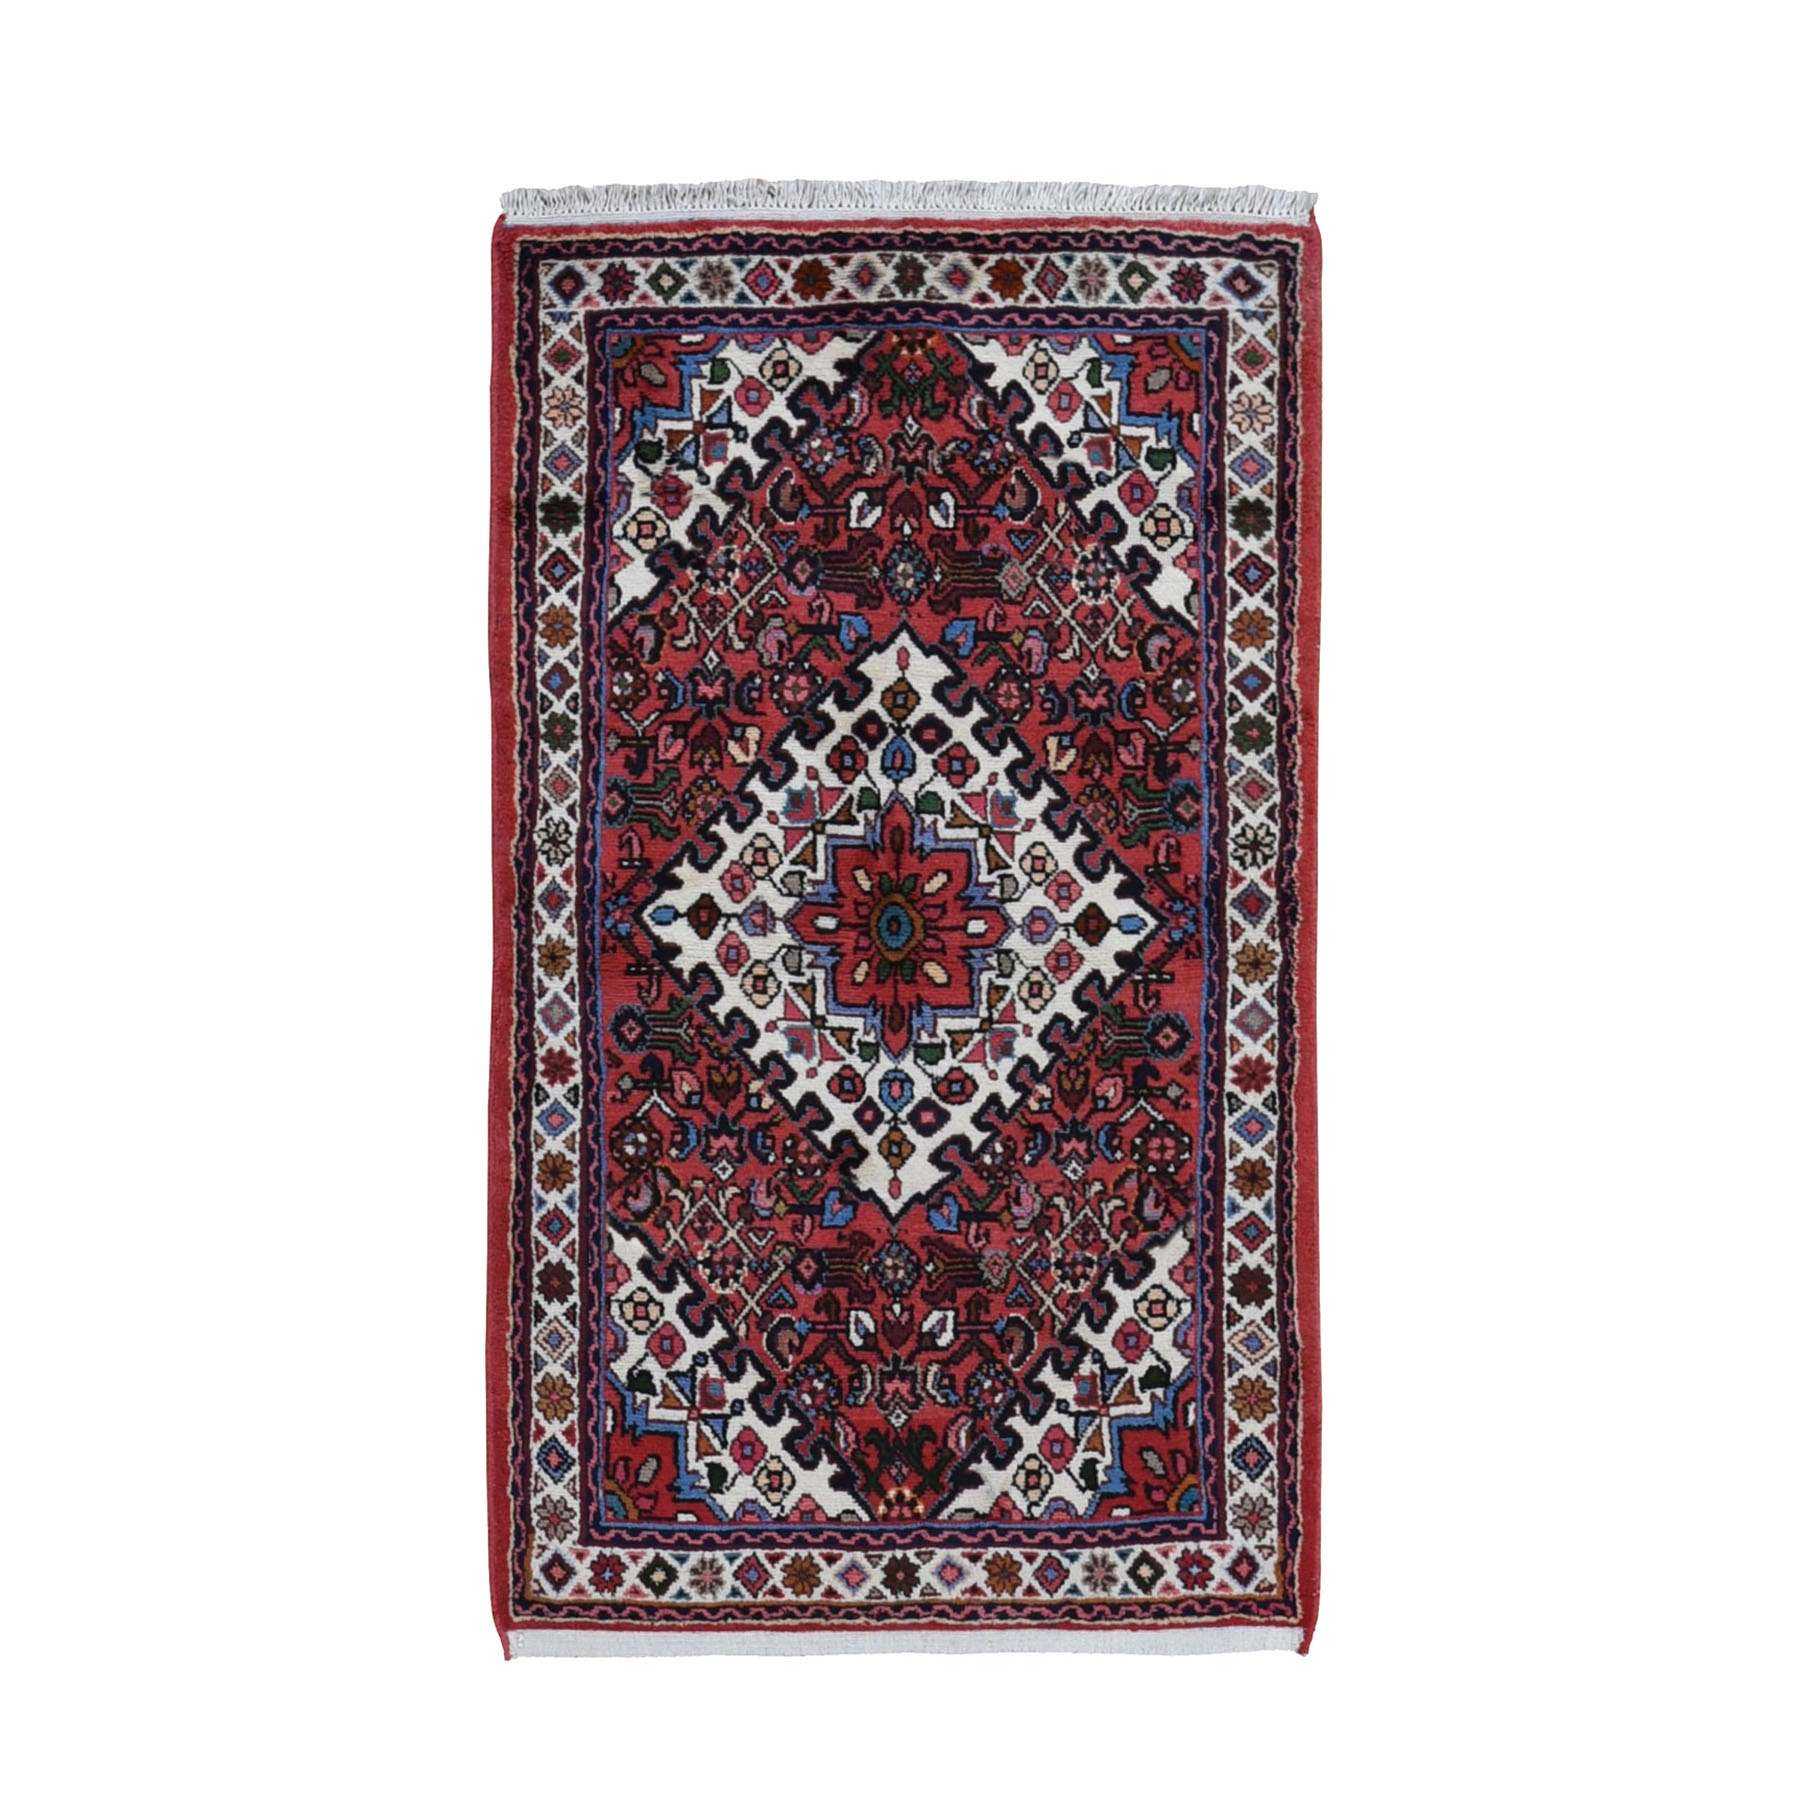 "3'2""x5'9"" Red New Persian Hamadan Pure Wool Hand Knotted Bohemian Rug"